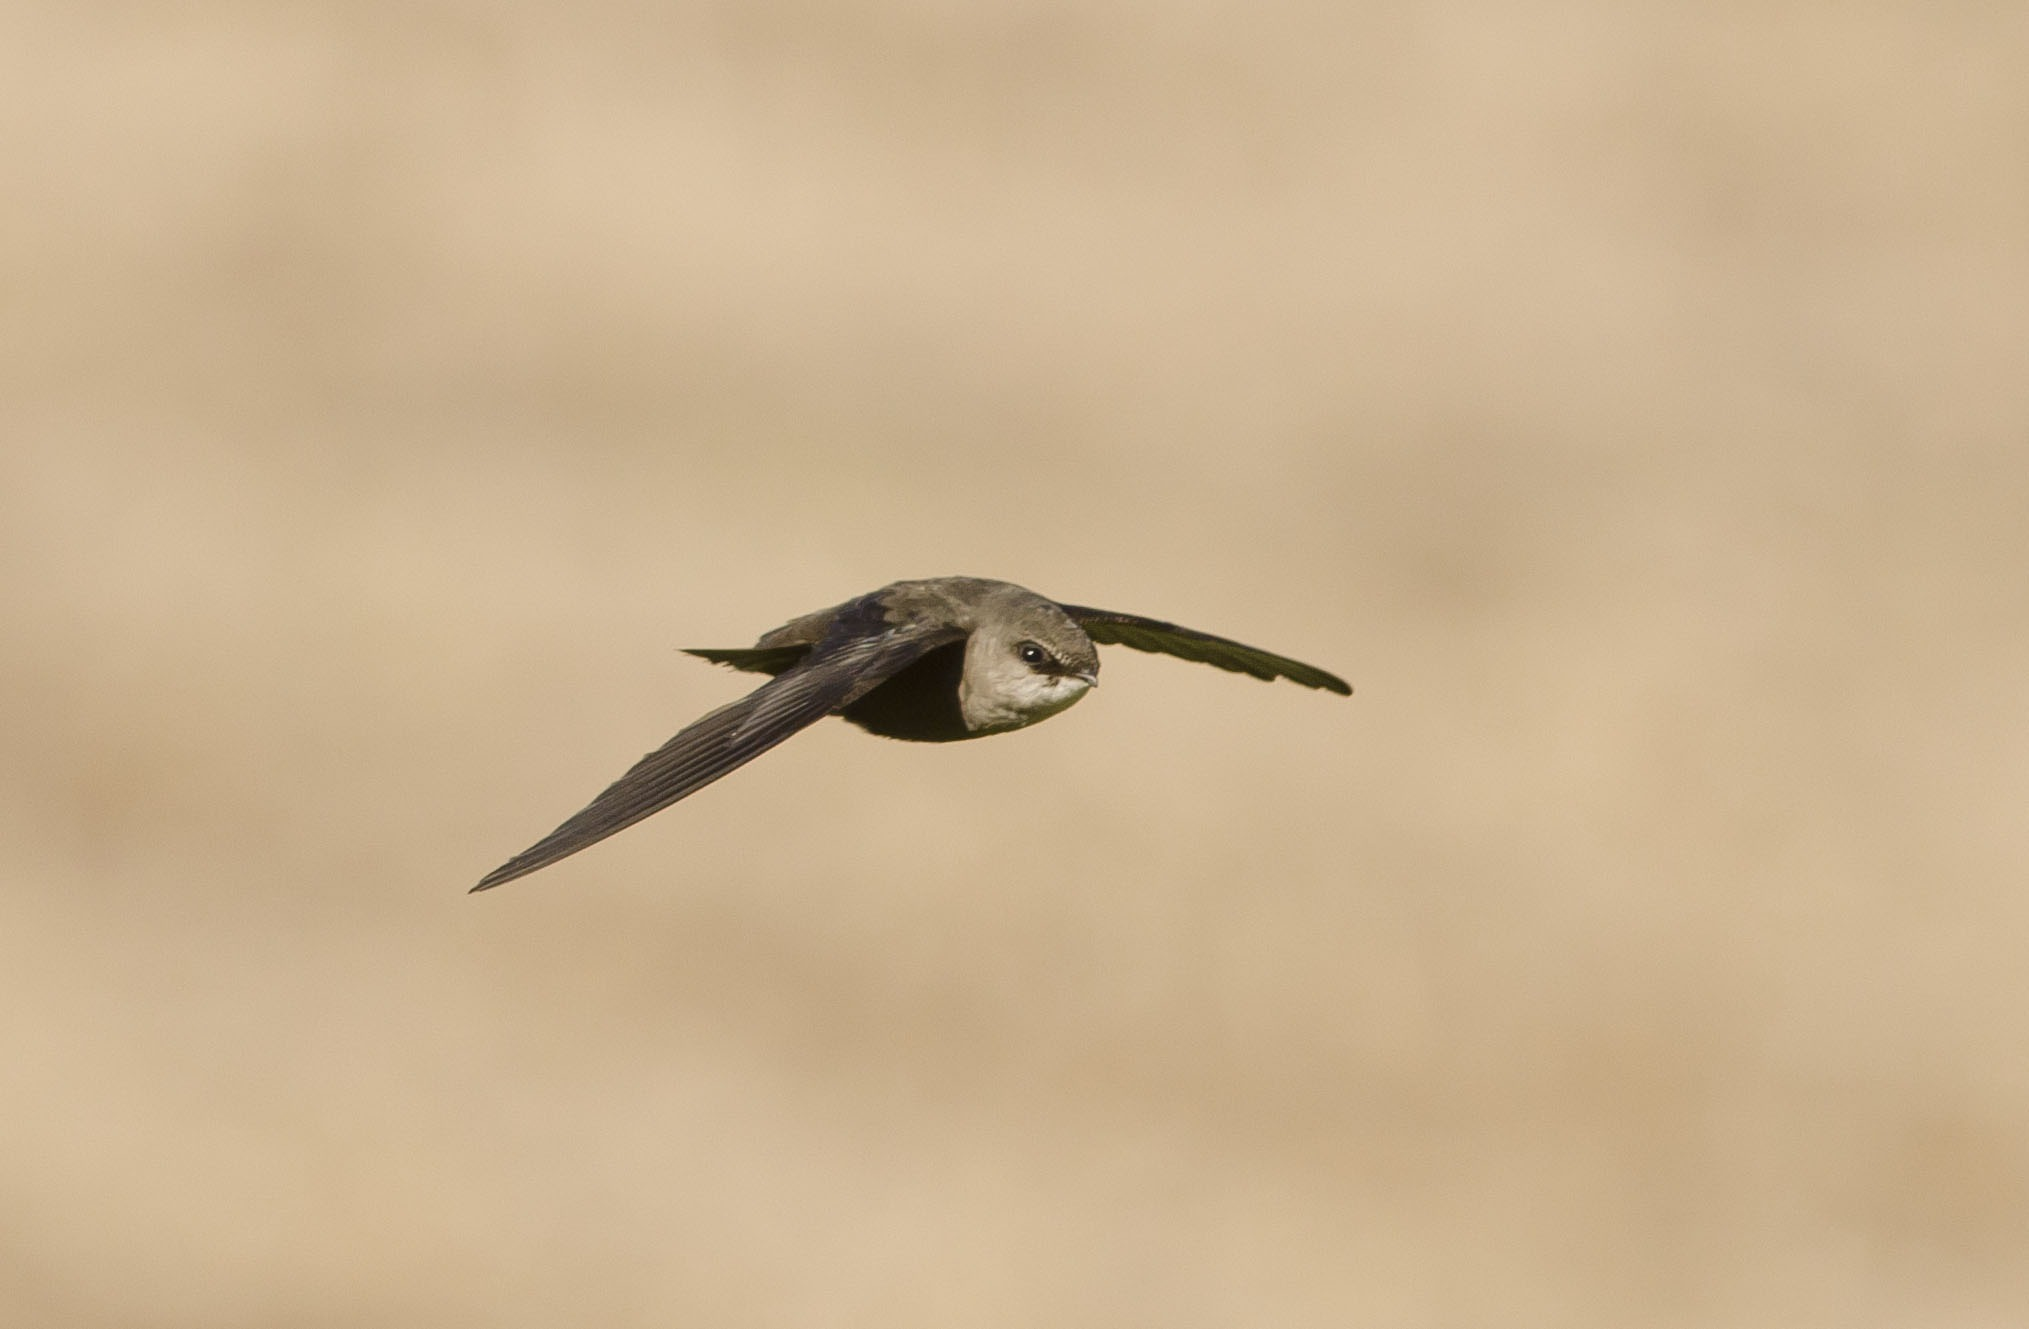 Sharing your home with swifts